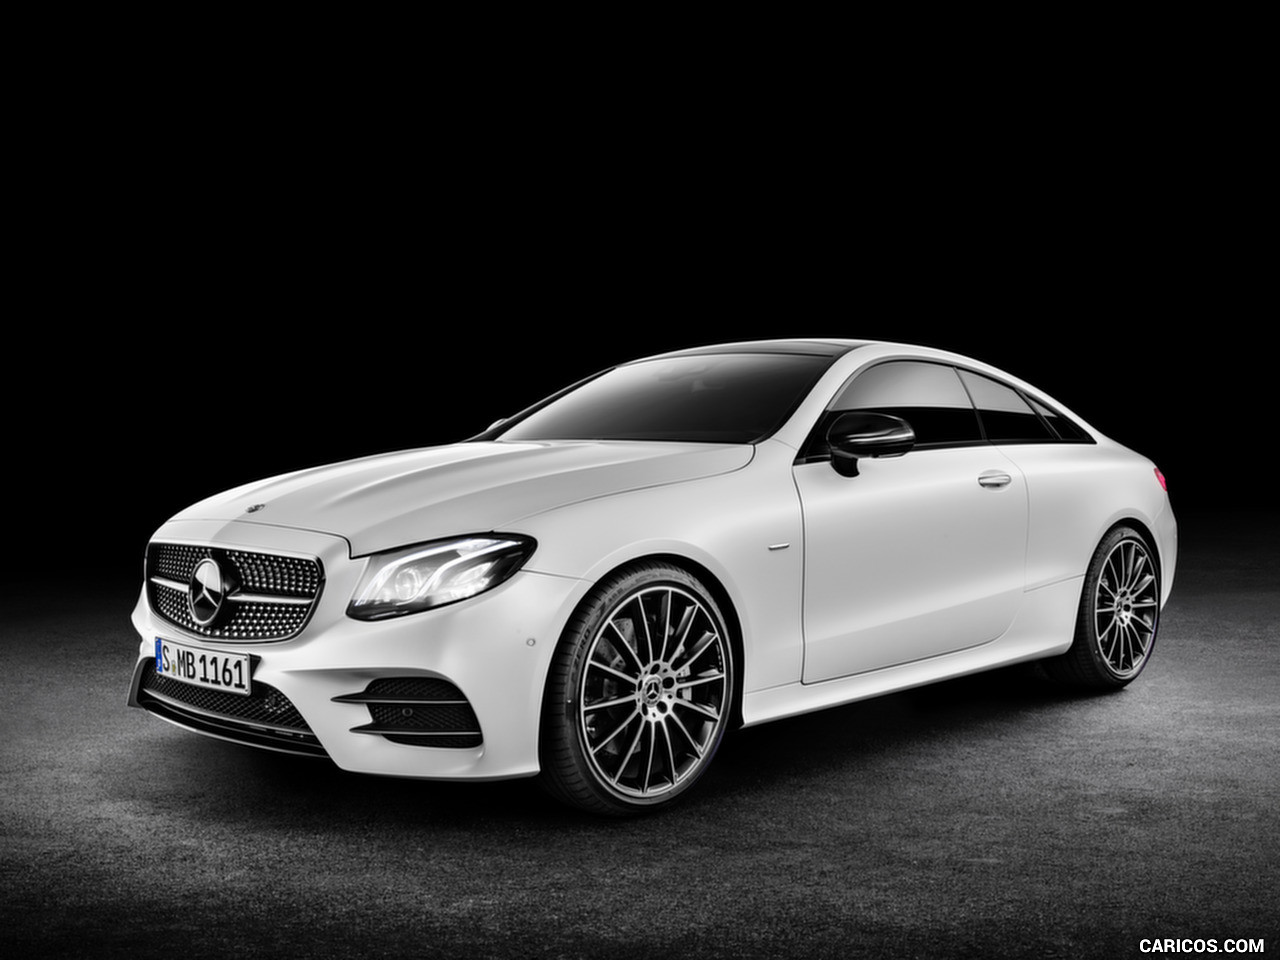 Mercedes e class coupe lease specials 2018 cars models for Mercedes benz car lease deals